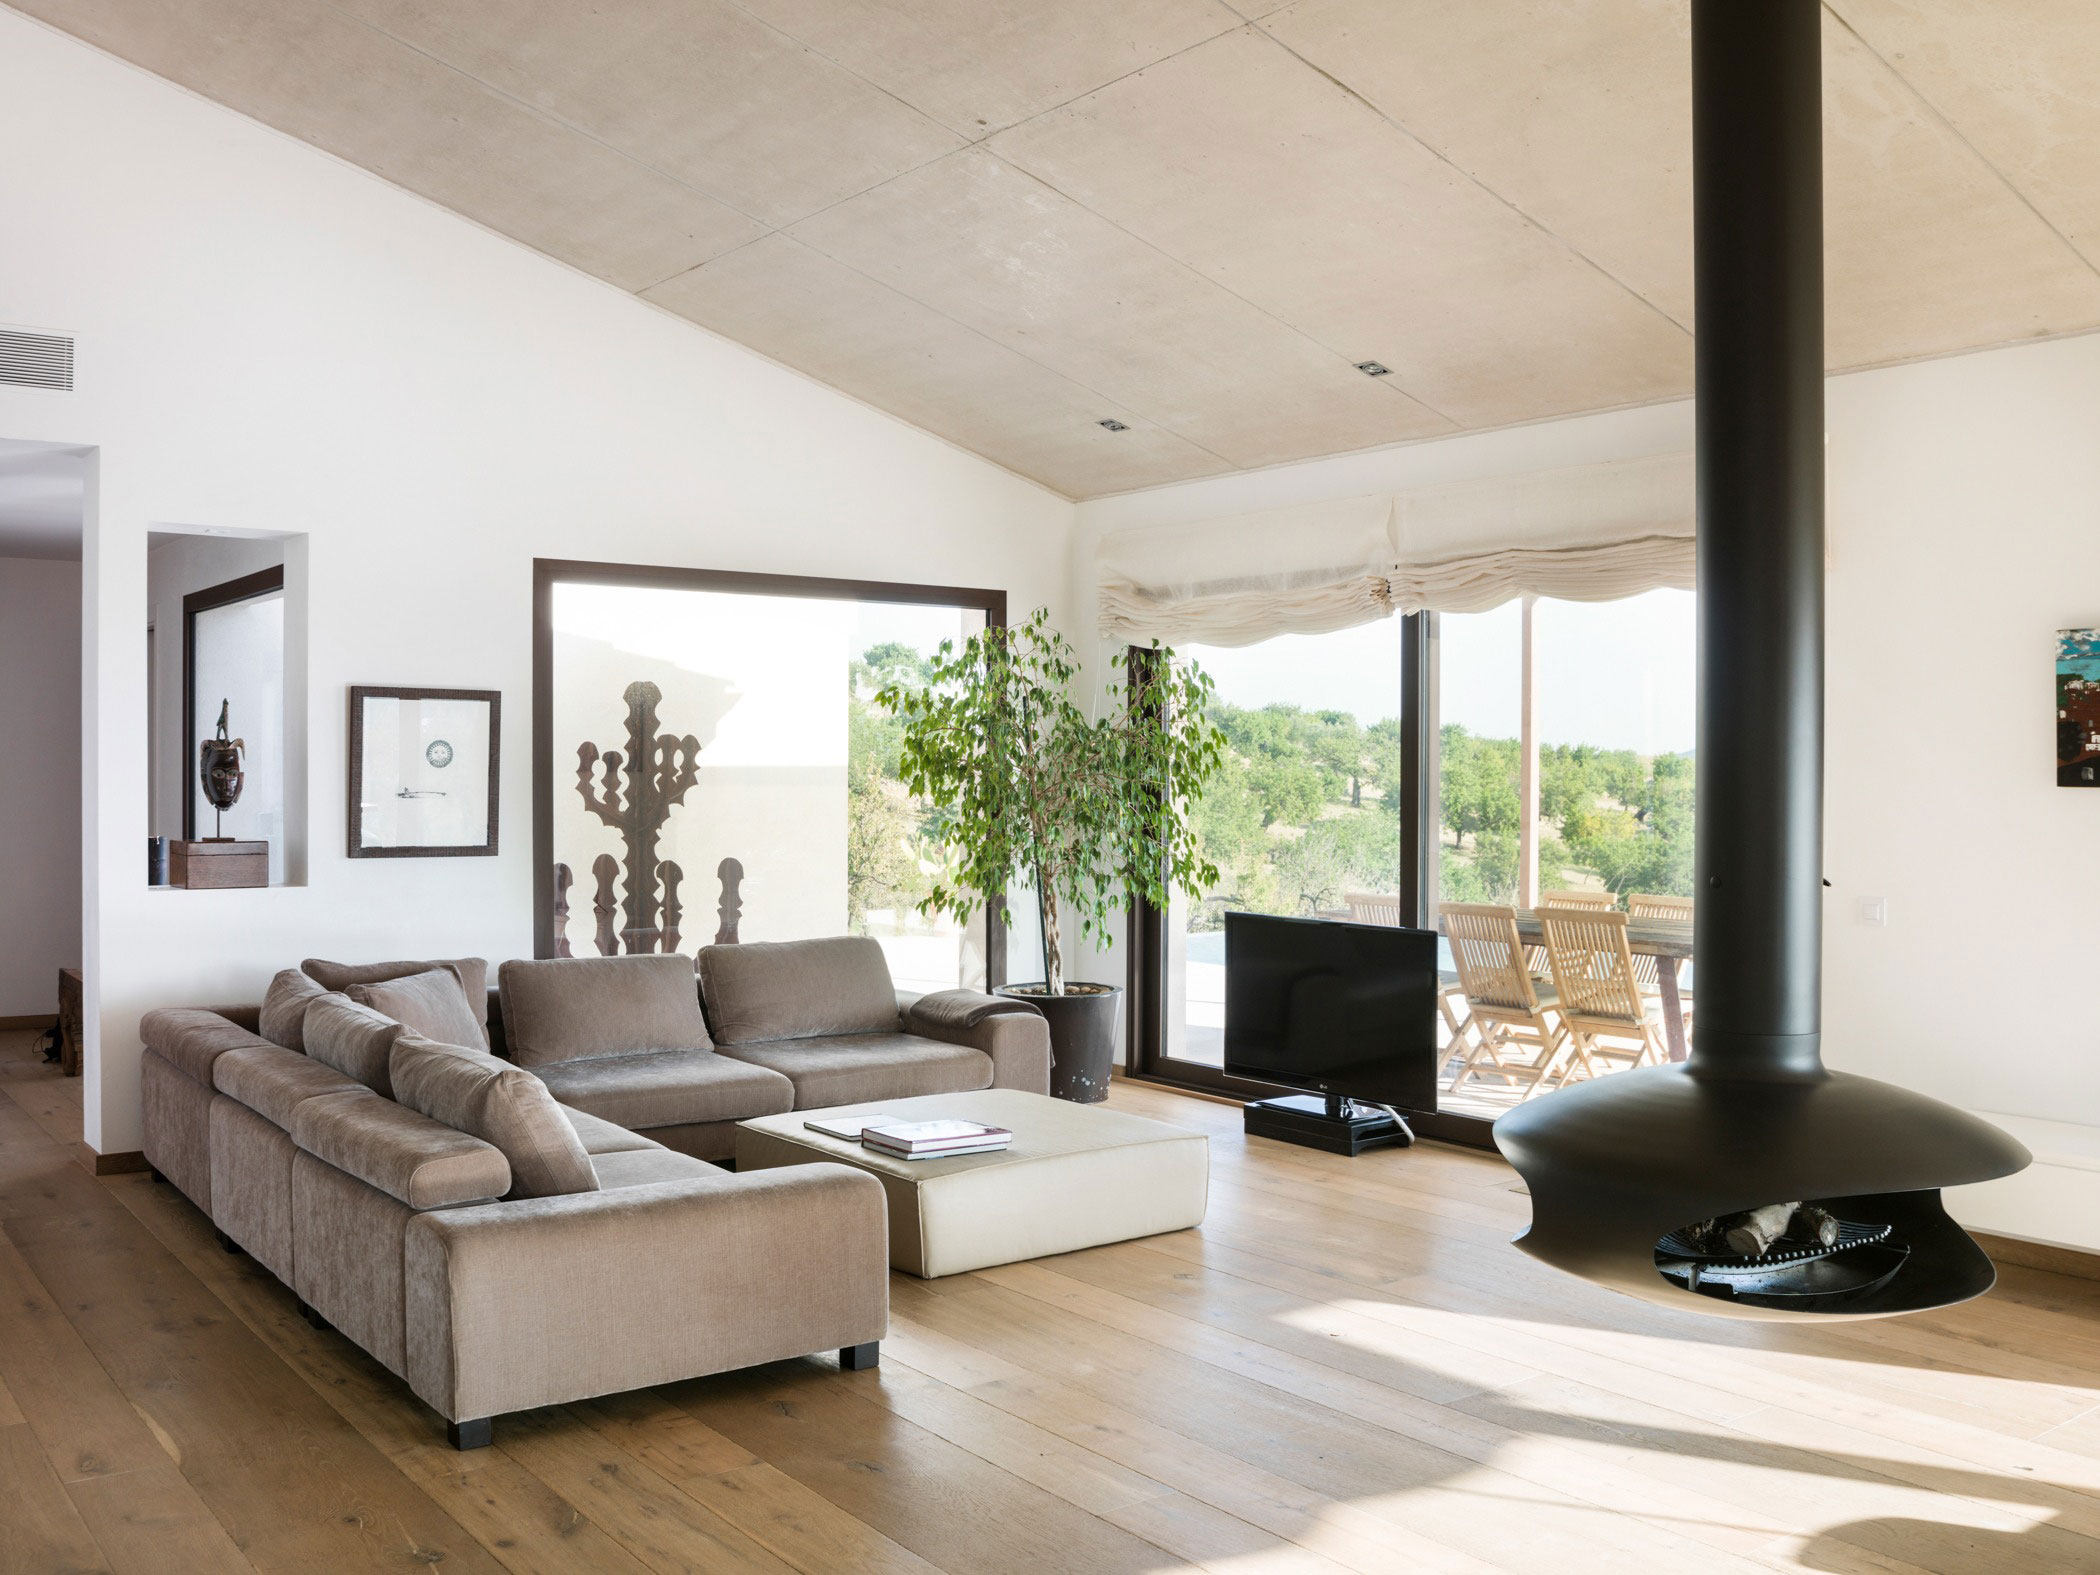 Family Home in Mallorca by Marga Rotger (4)